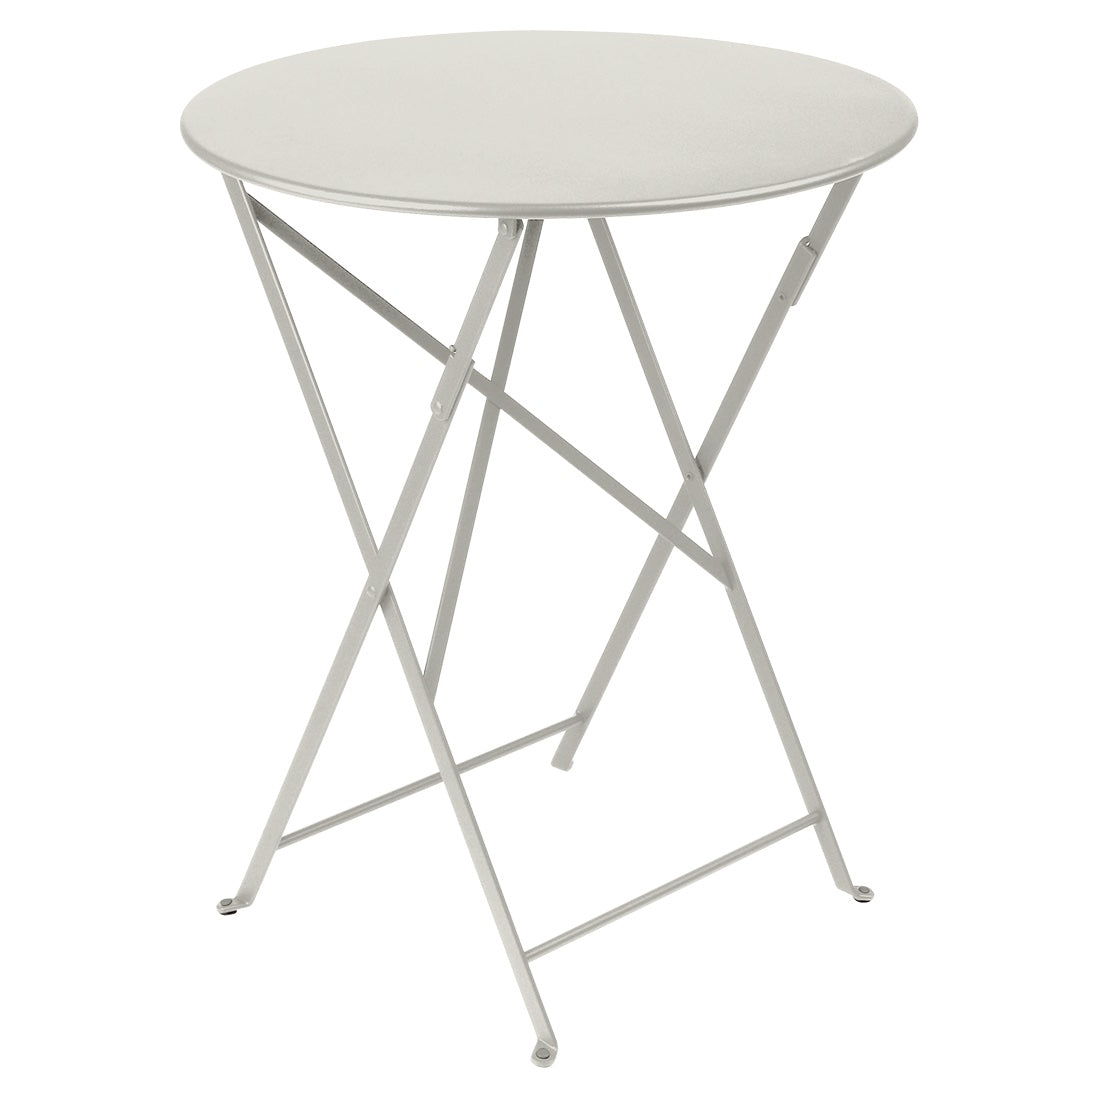 FERMOB | Bistro | Round Table | 60cm | 24 colour options | Made for you - Available in 4-6 weeks